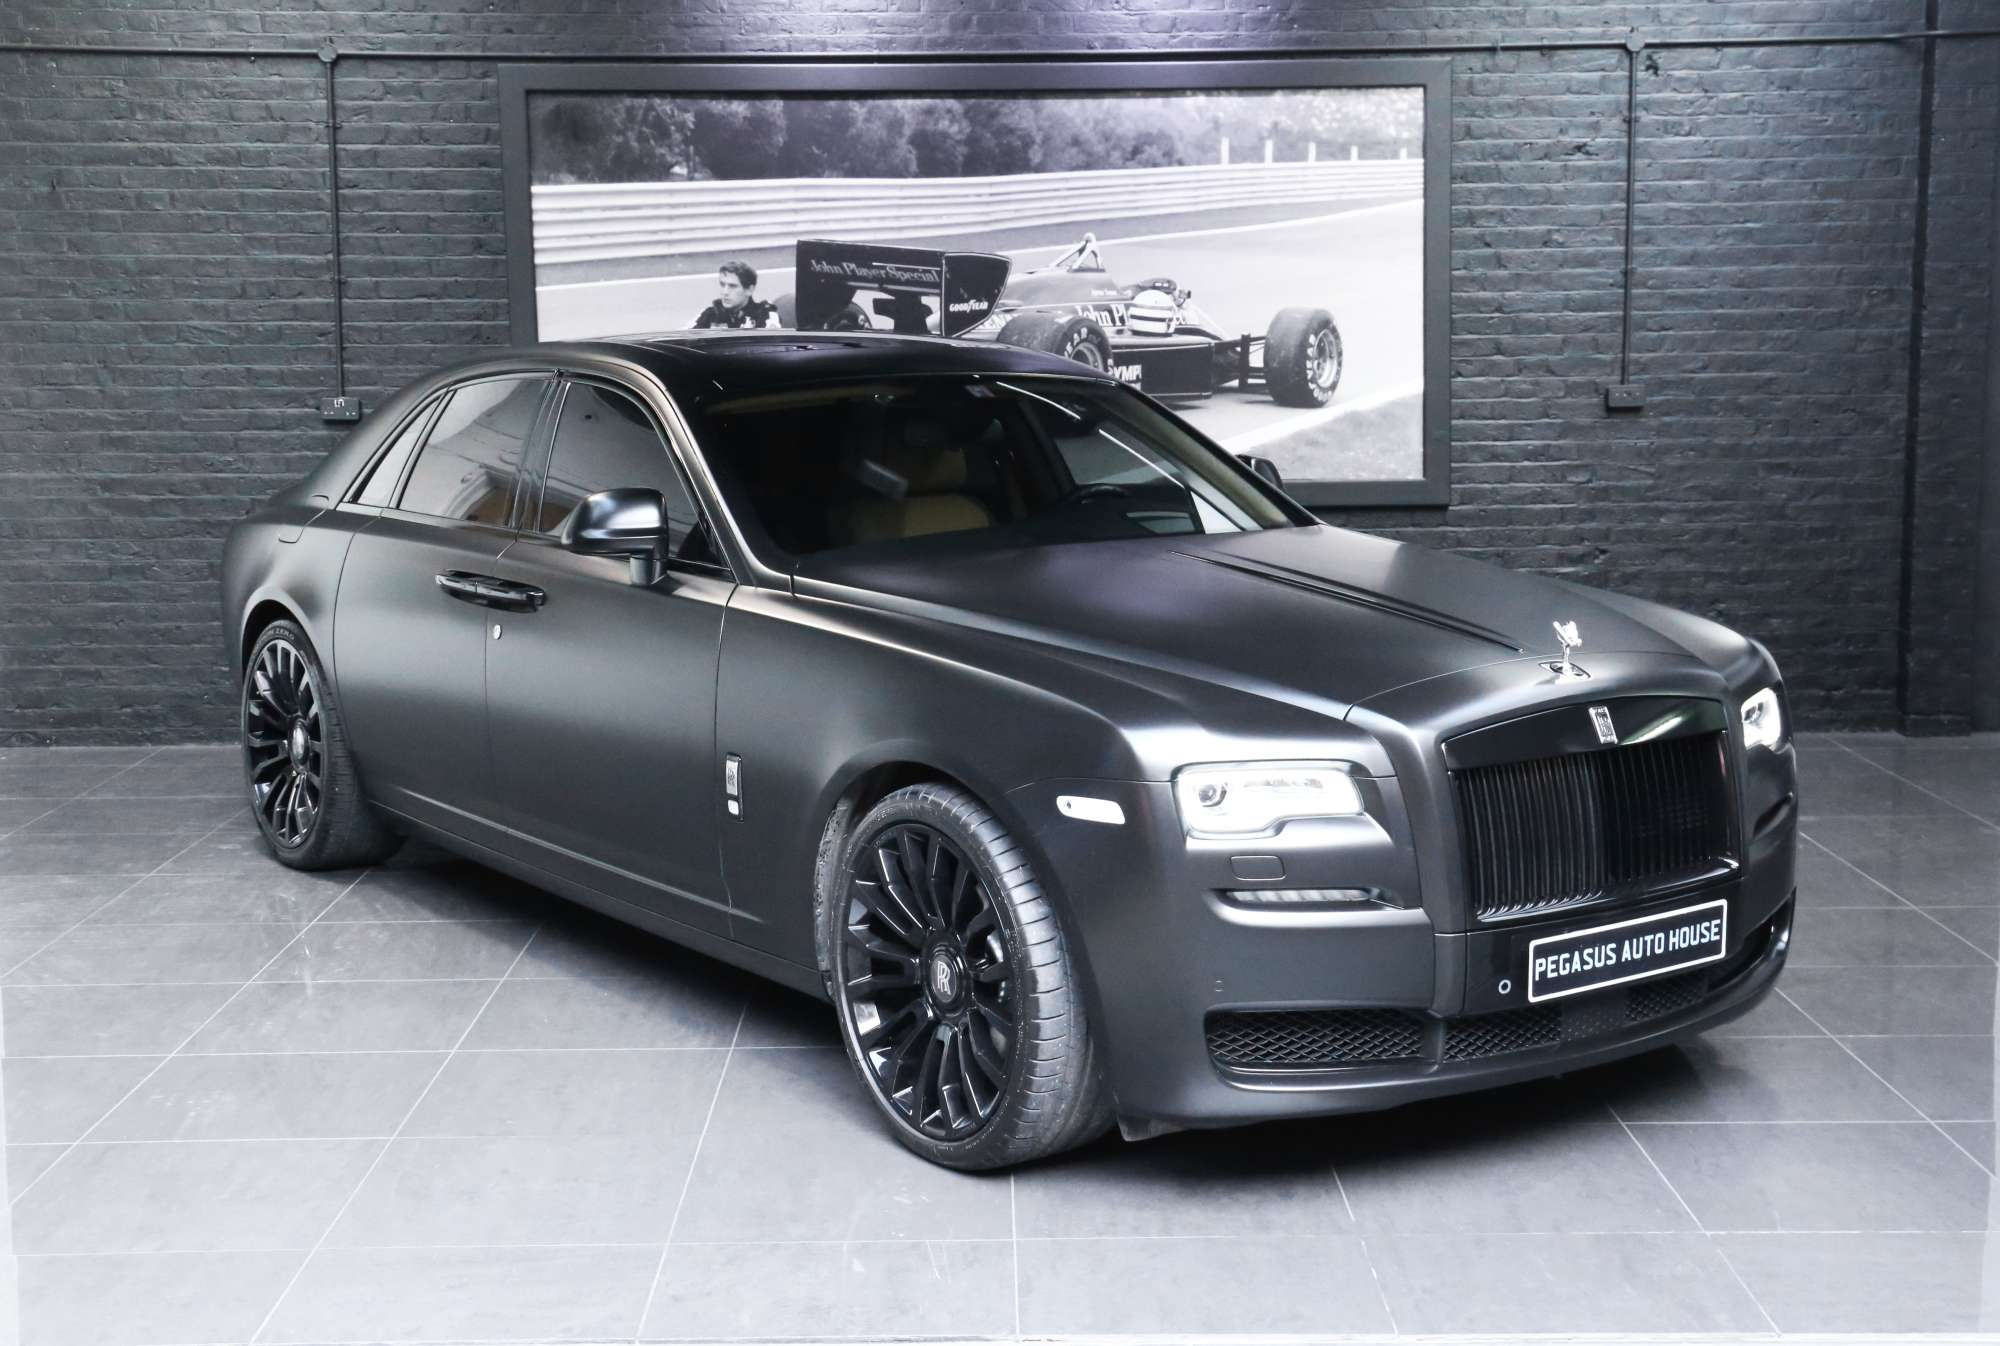 lhd rolls royce ghost pegasus auto house. Black Bedroom Furniture Sets. Home Design Ideas